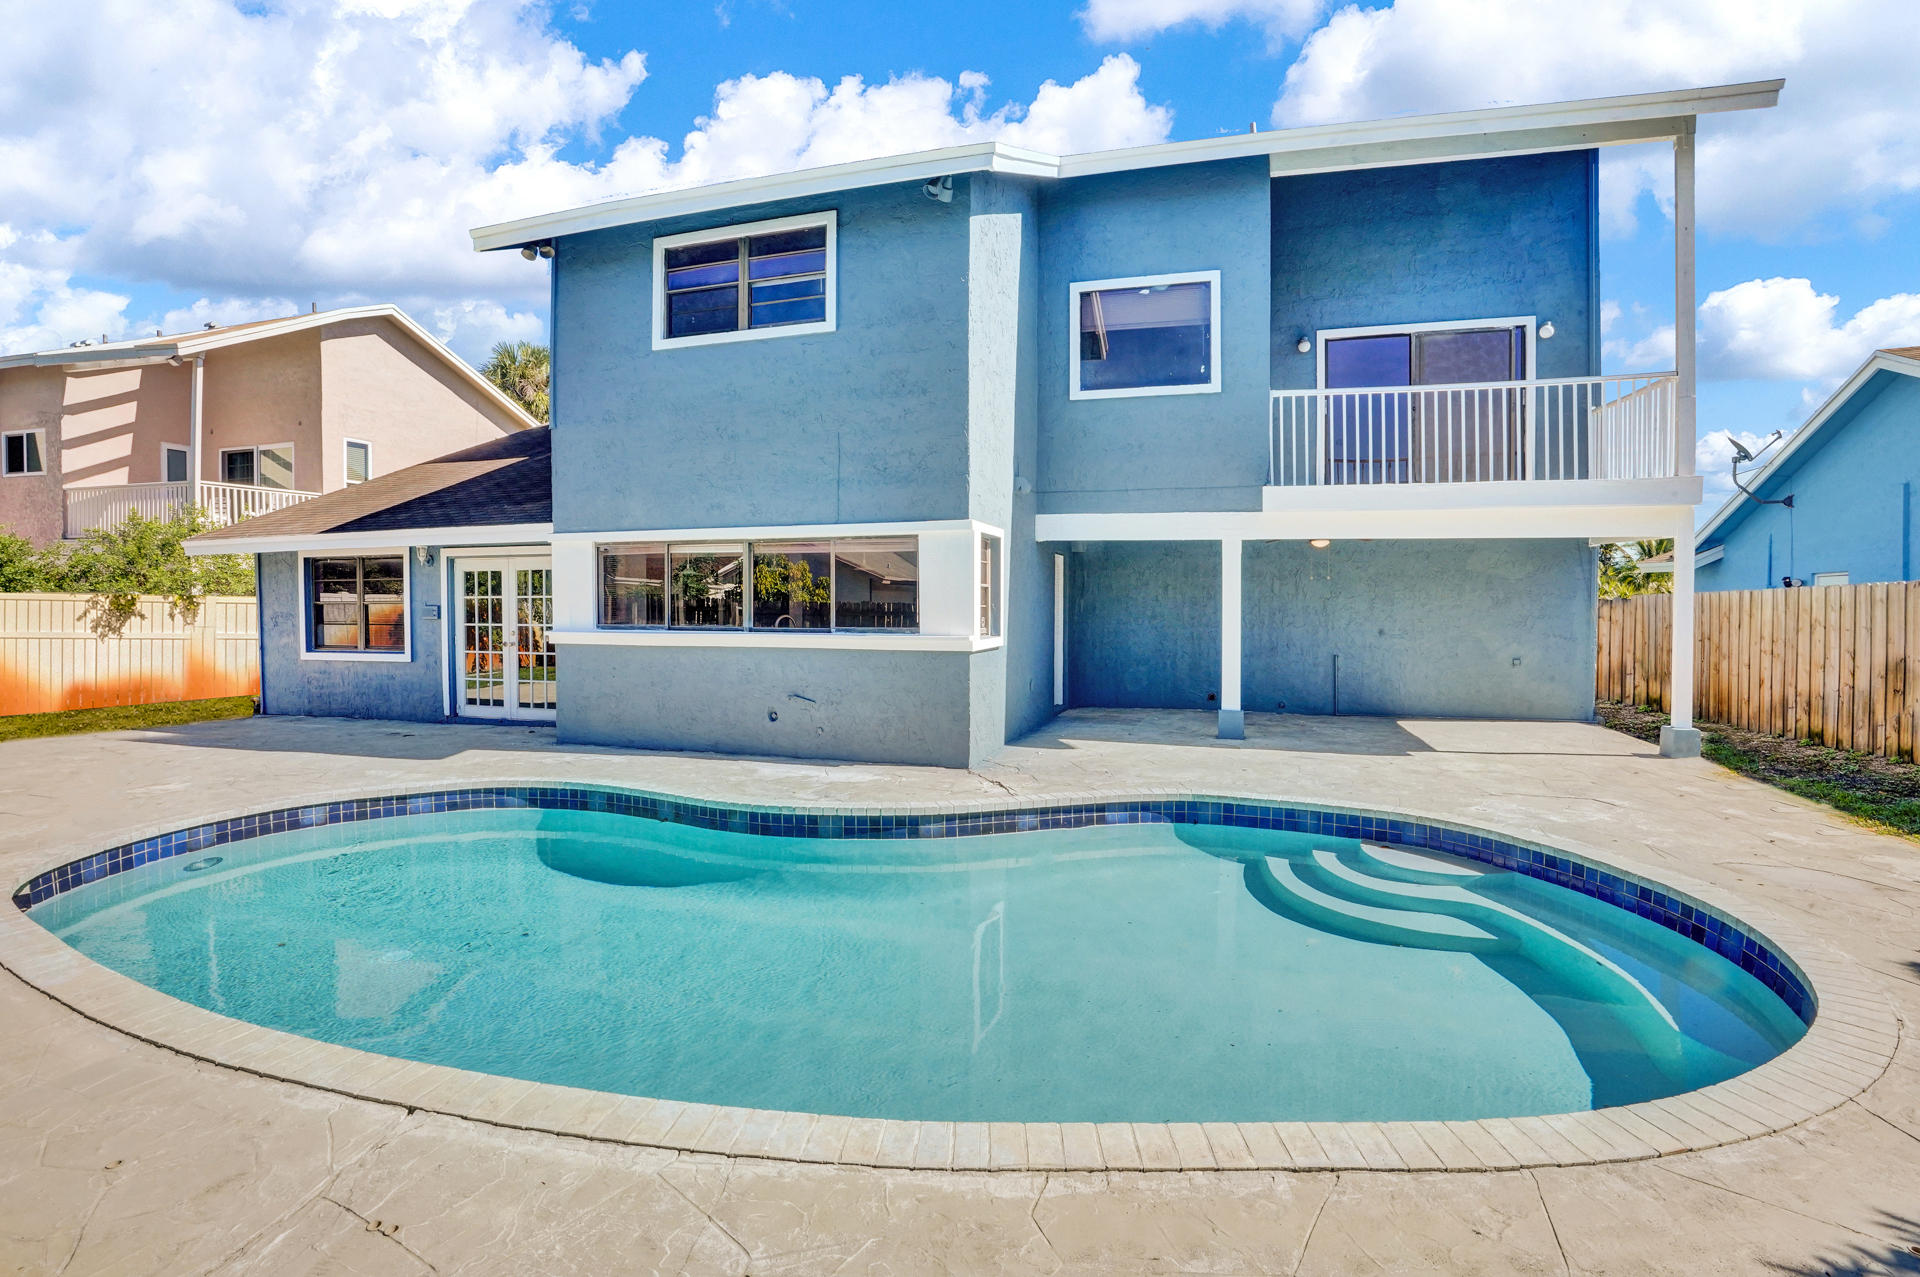 Details for 4977 72nd Avenue Nw, Lauderhill, FL 33319